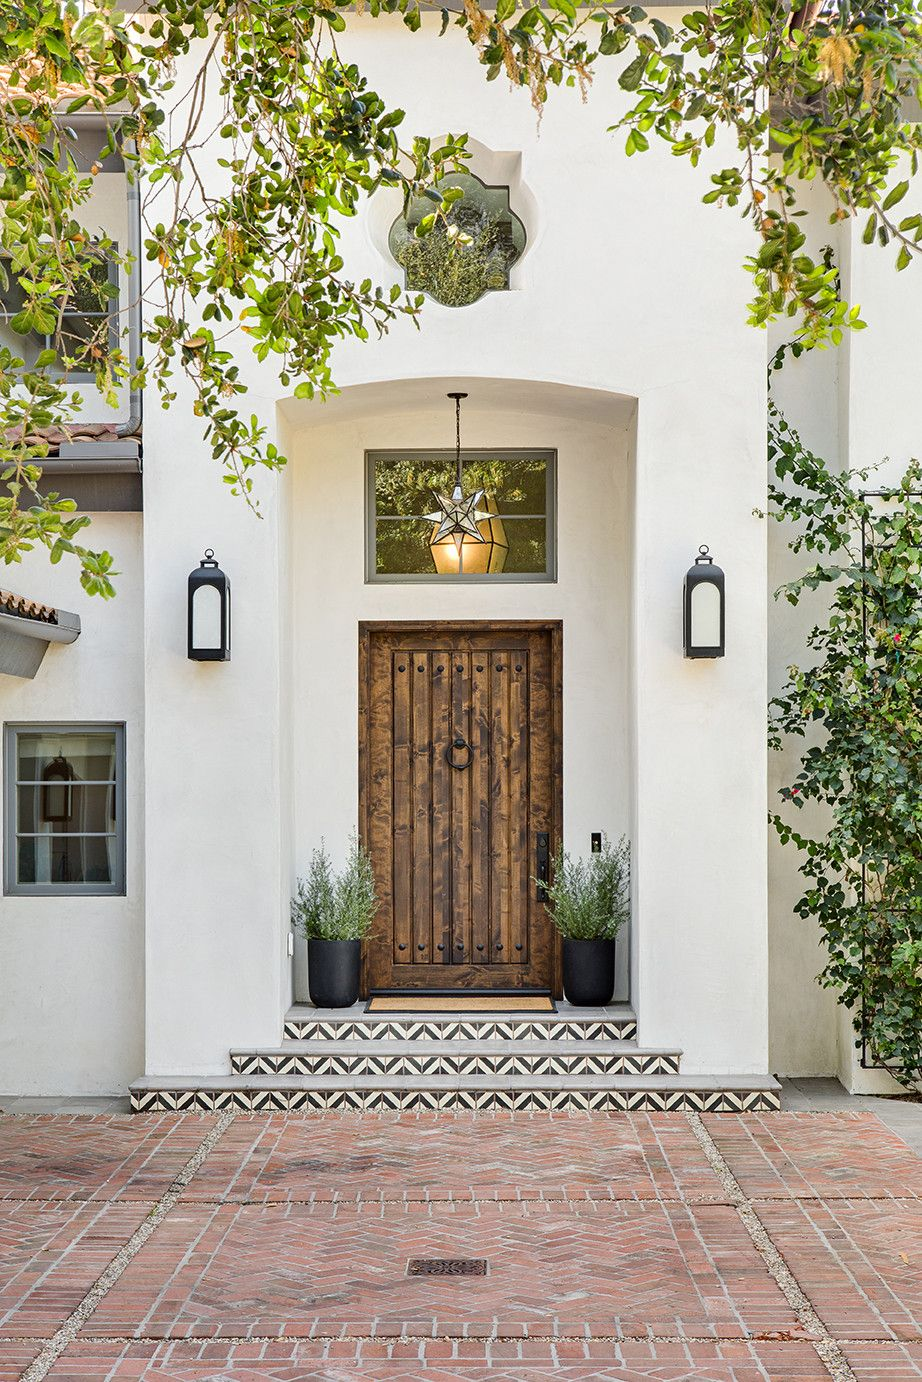 Rosa Beltran Design Mediterranean California Home Tour Mediterranean Style Homes House Exterior Spanish Style Homes